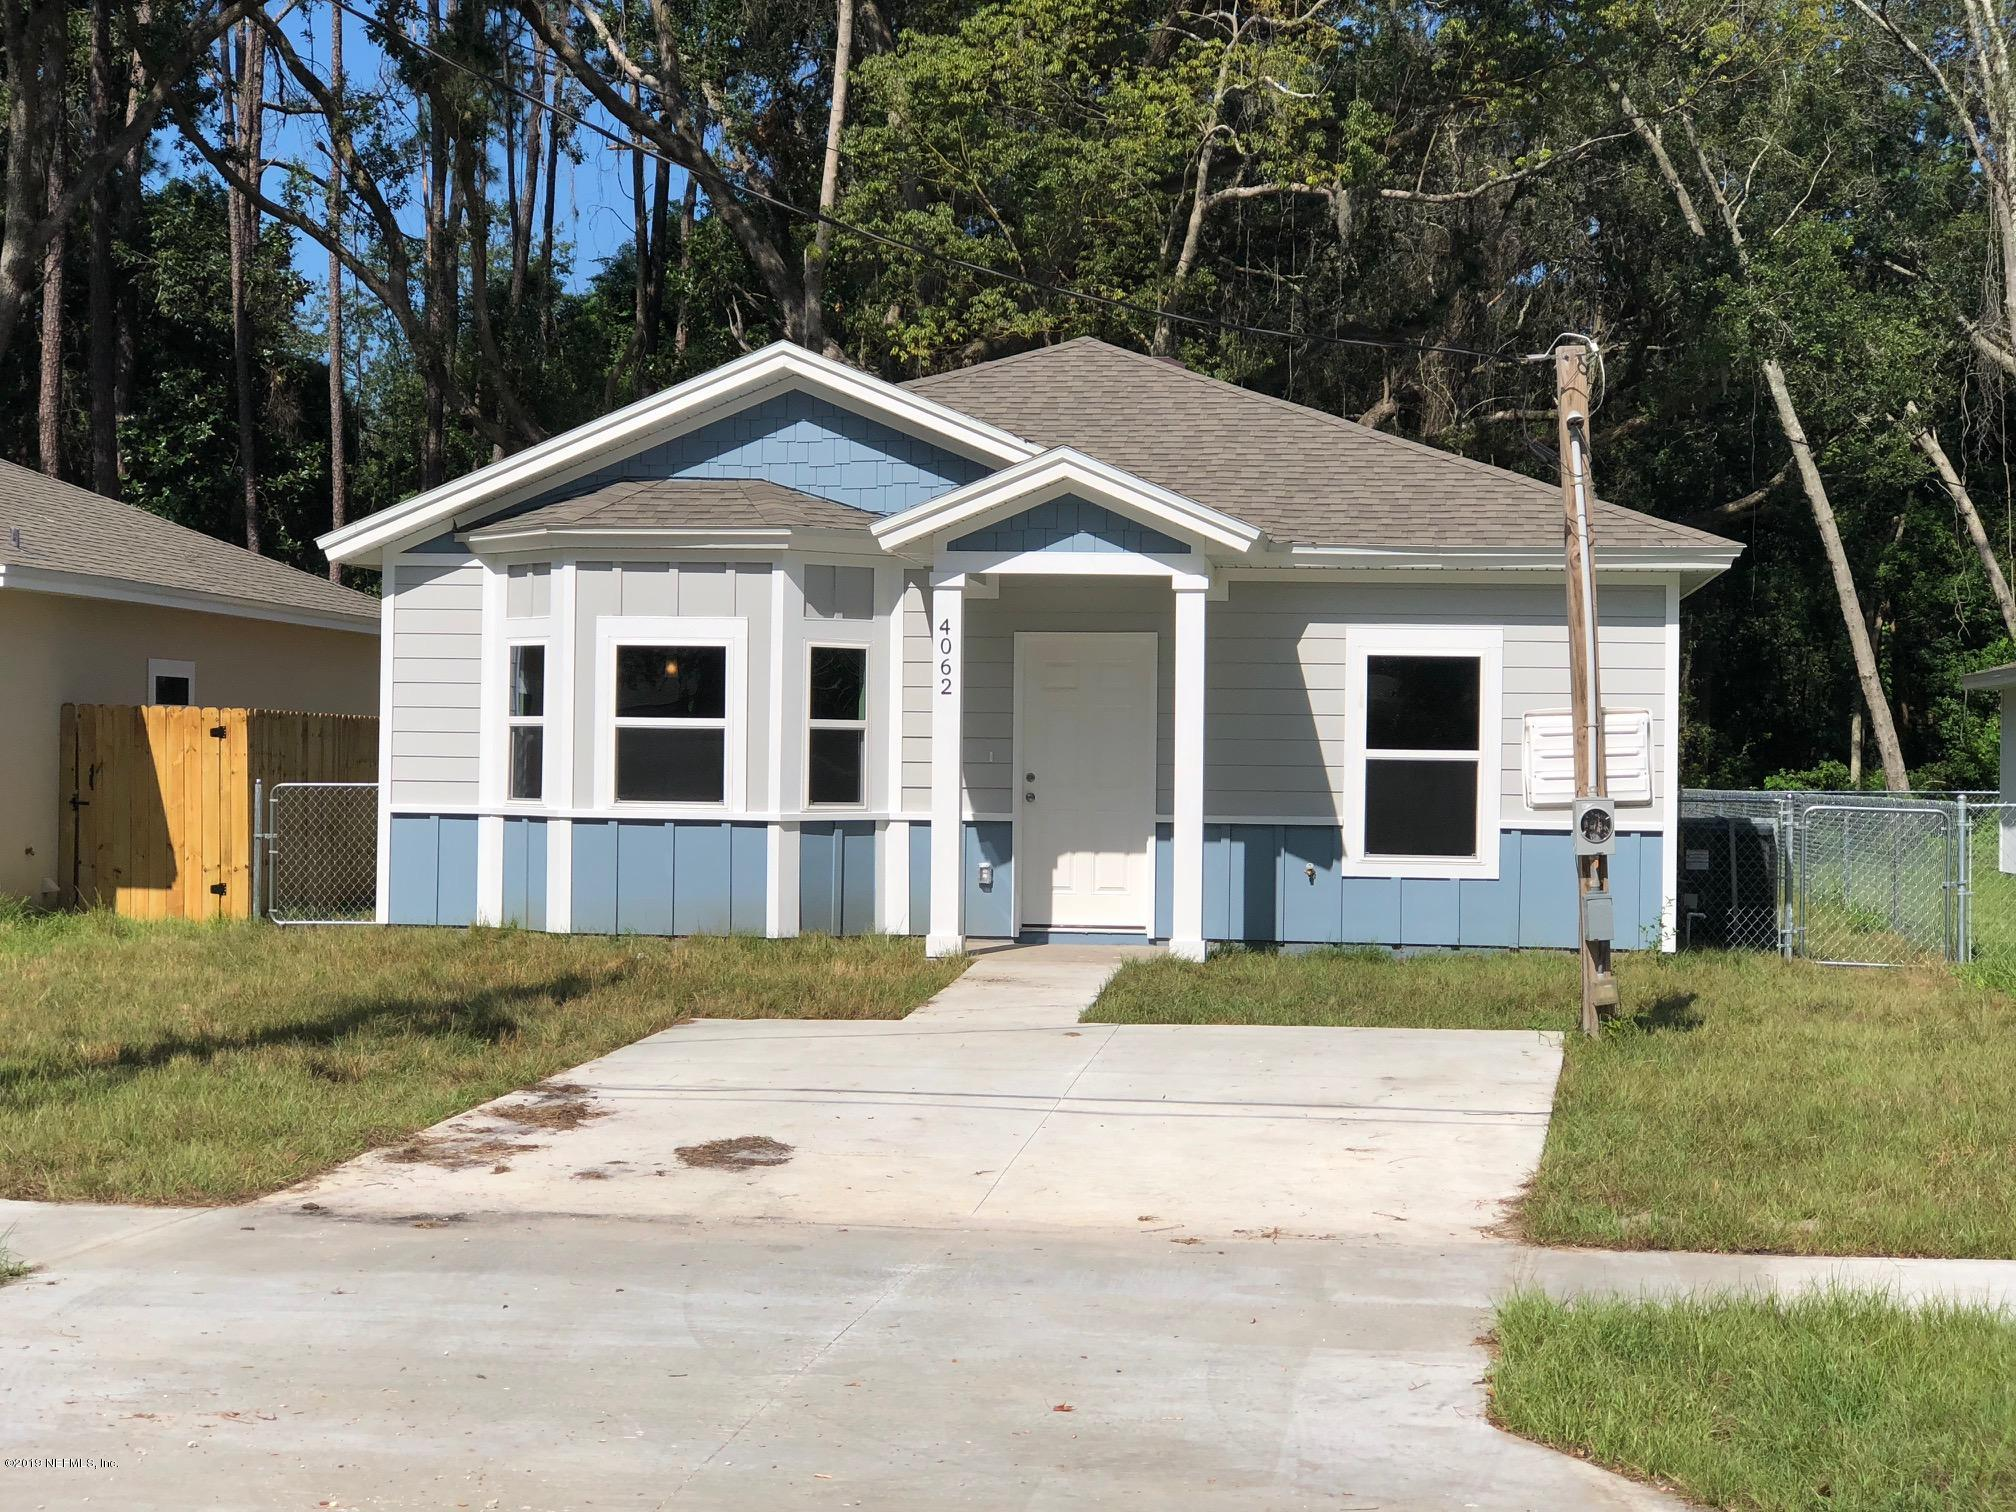 6537 BOB O LINK, JACKSONVILLE, FLORIDA 32219, 3 Bedrooms Bedrooms, ,2 BathroomsBathrooms,Commercial,For sale,BOB O LINK,978901